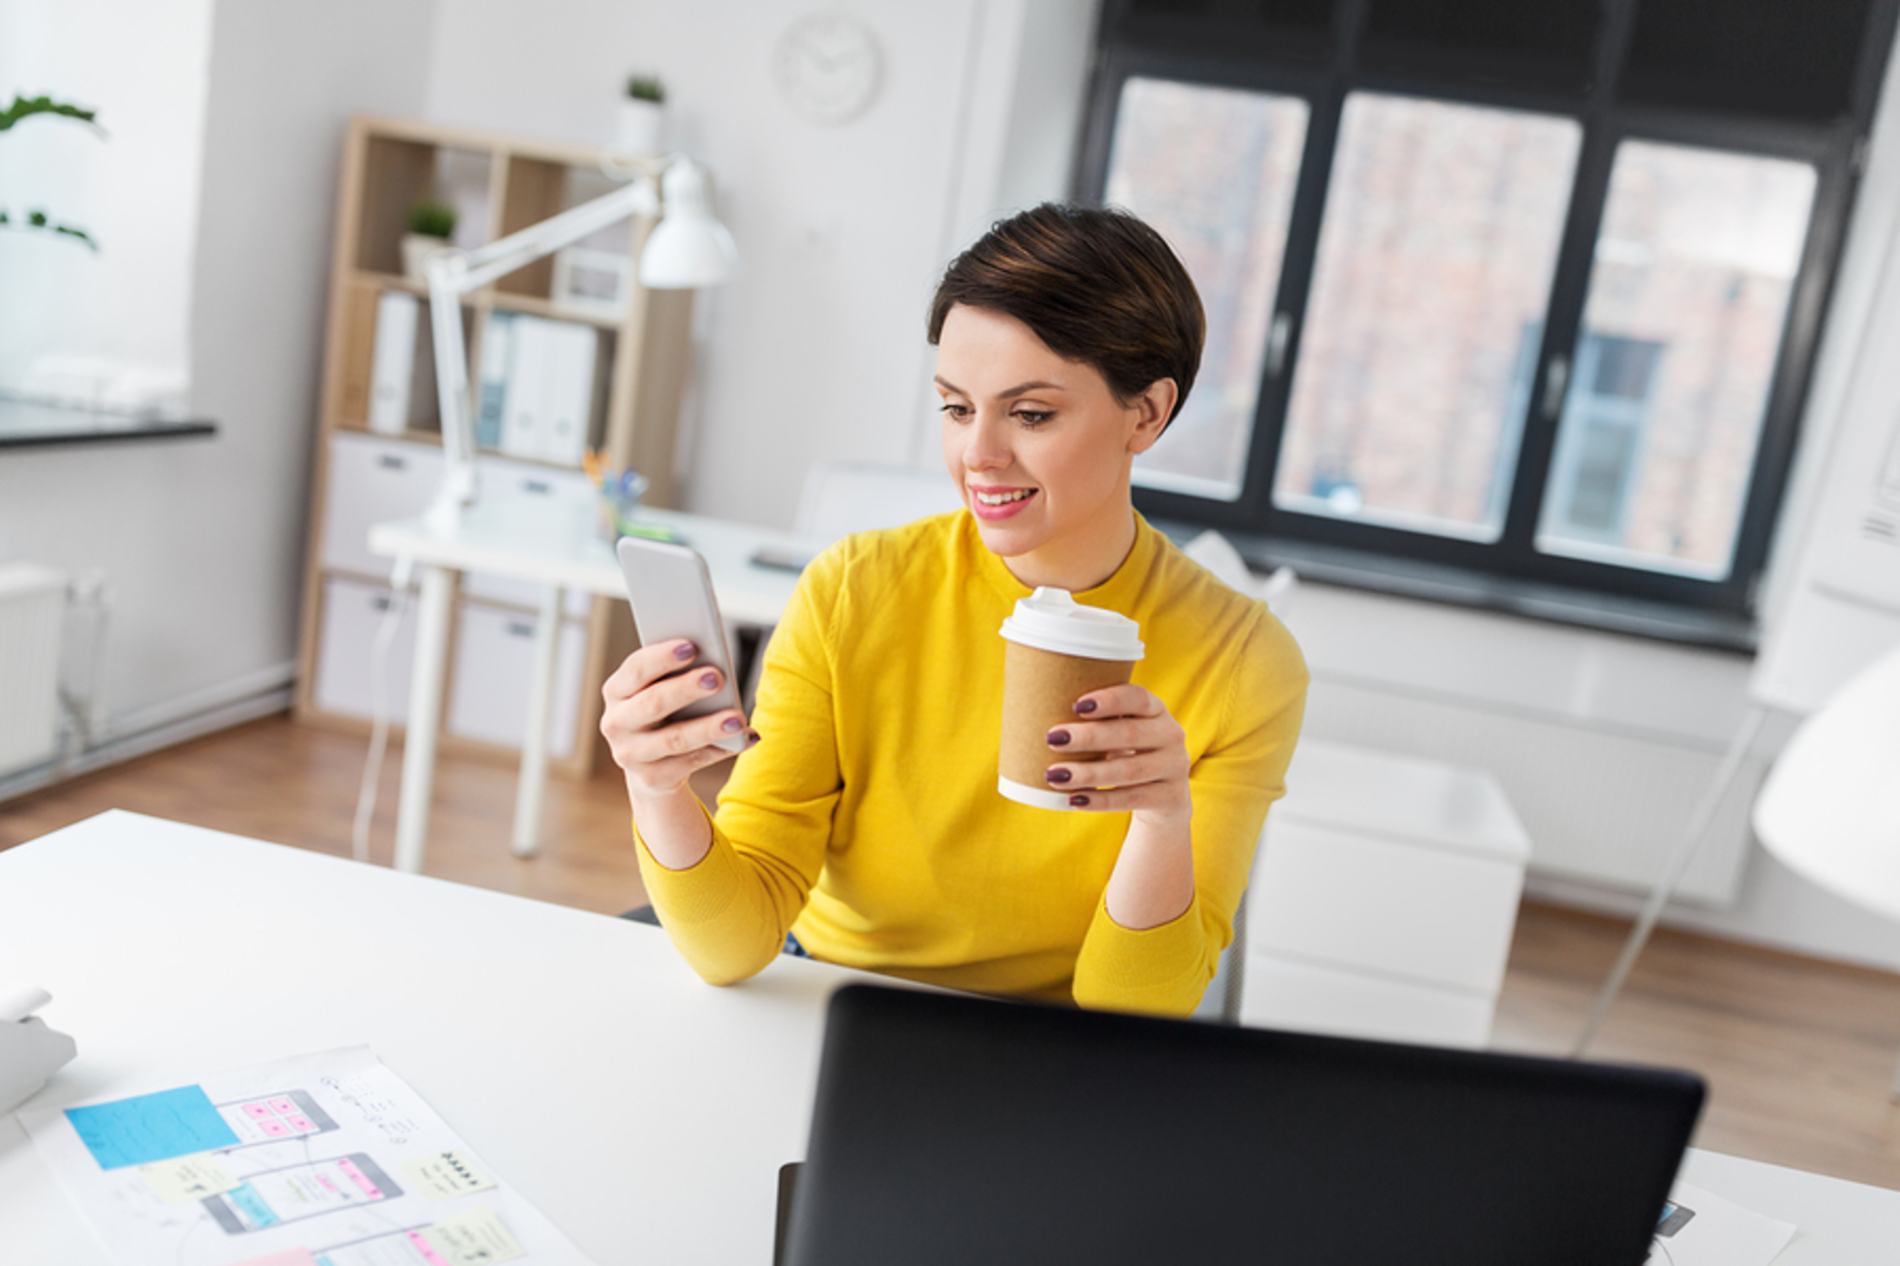 Young woman sitting at her desk looking at her phone and drinking a cup of coffee.